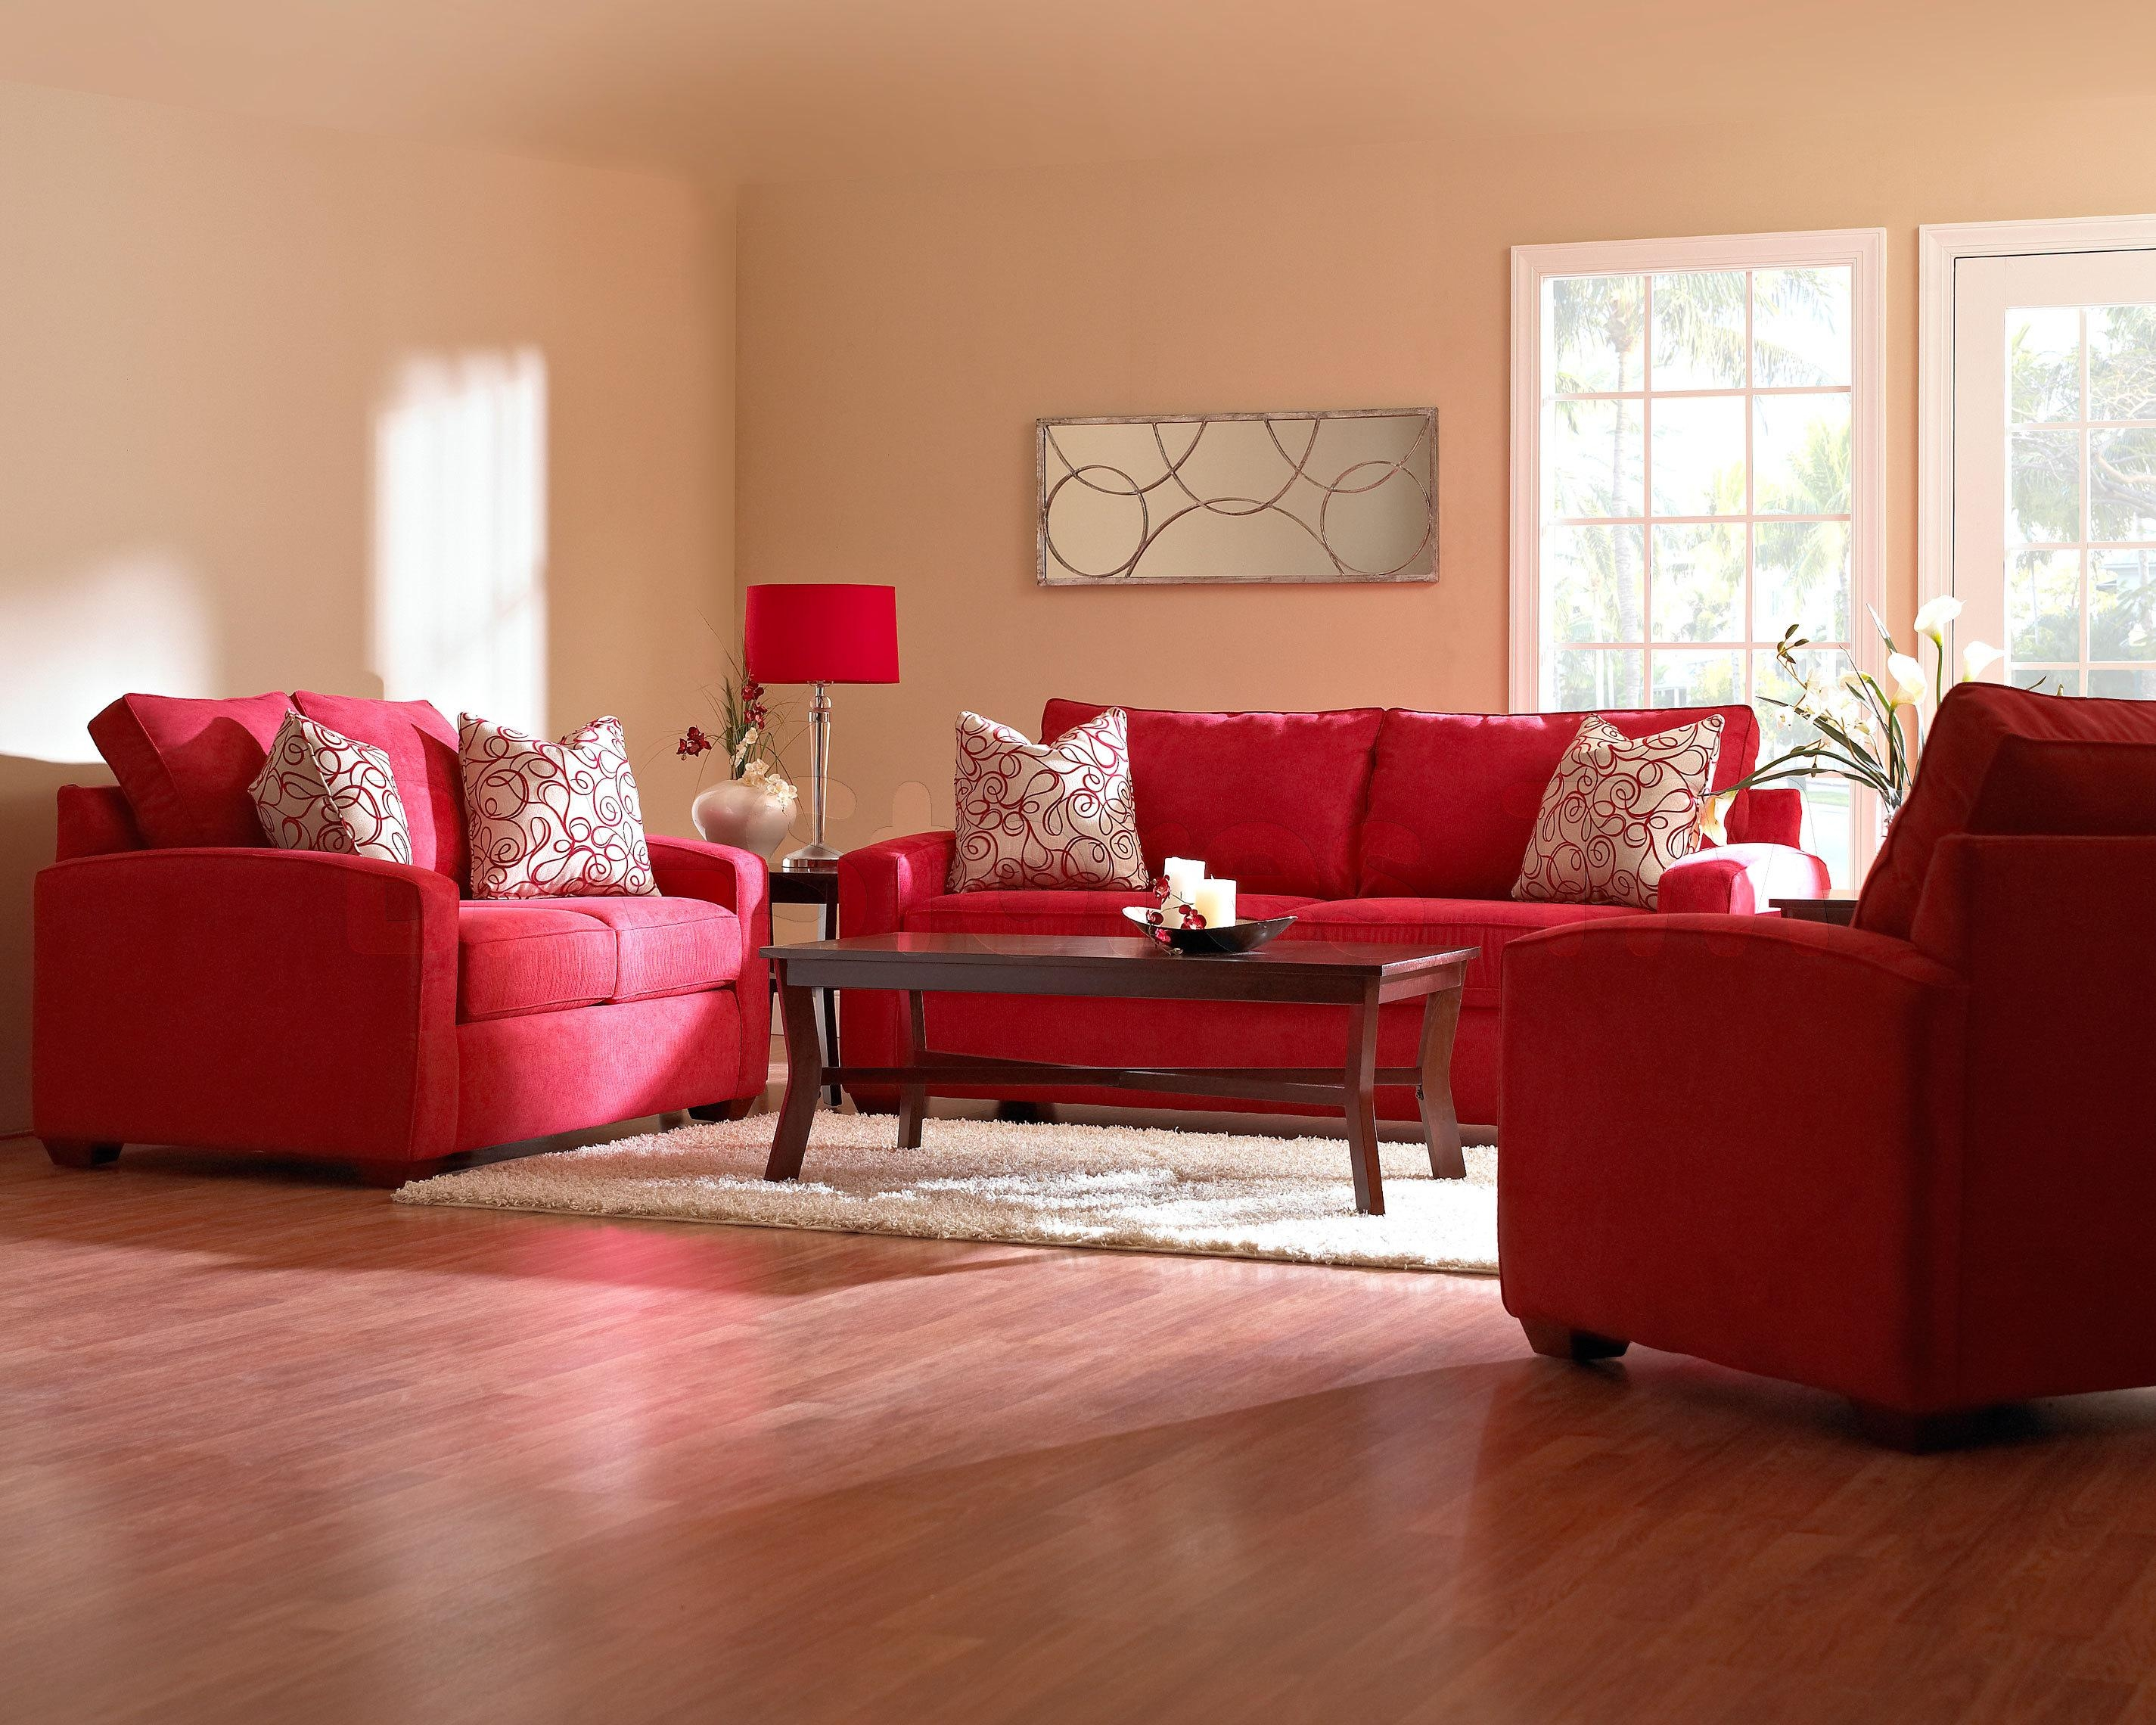 14 Red Sofa Living Room | Carehouse pertaining to Red Sofas and Chairs